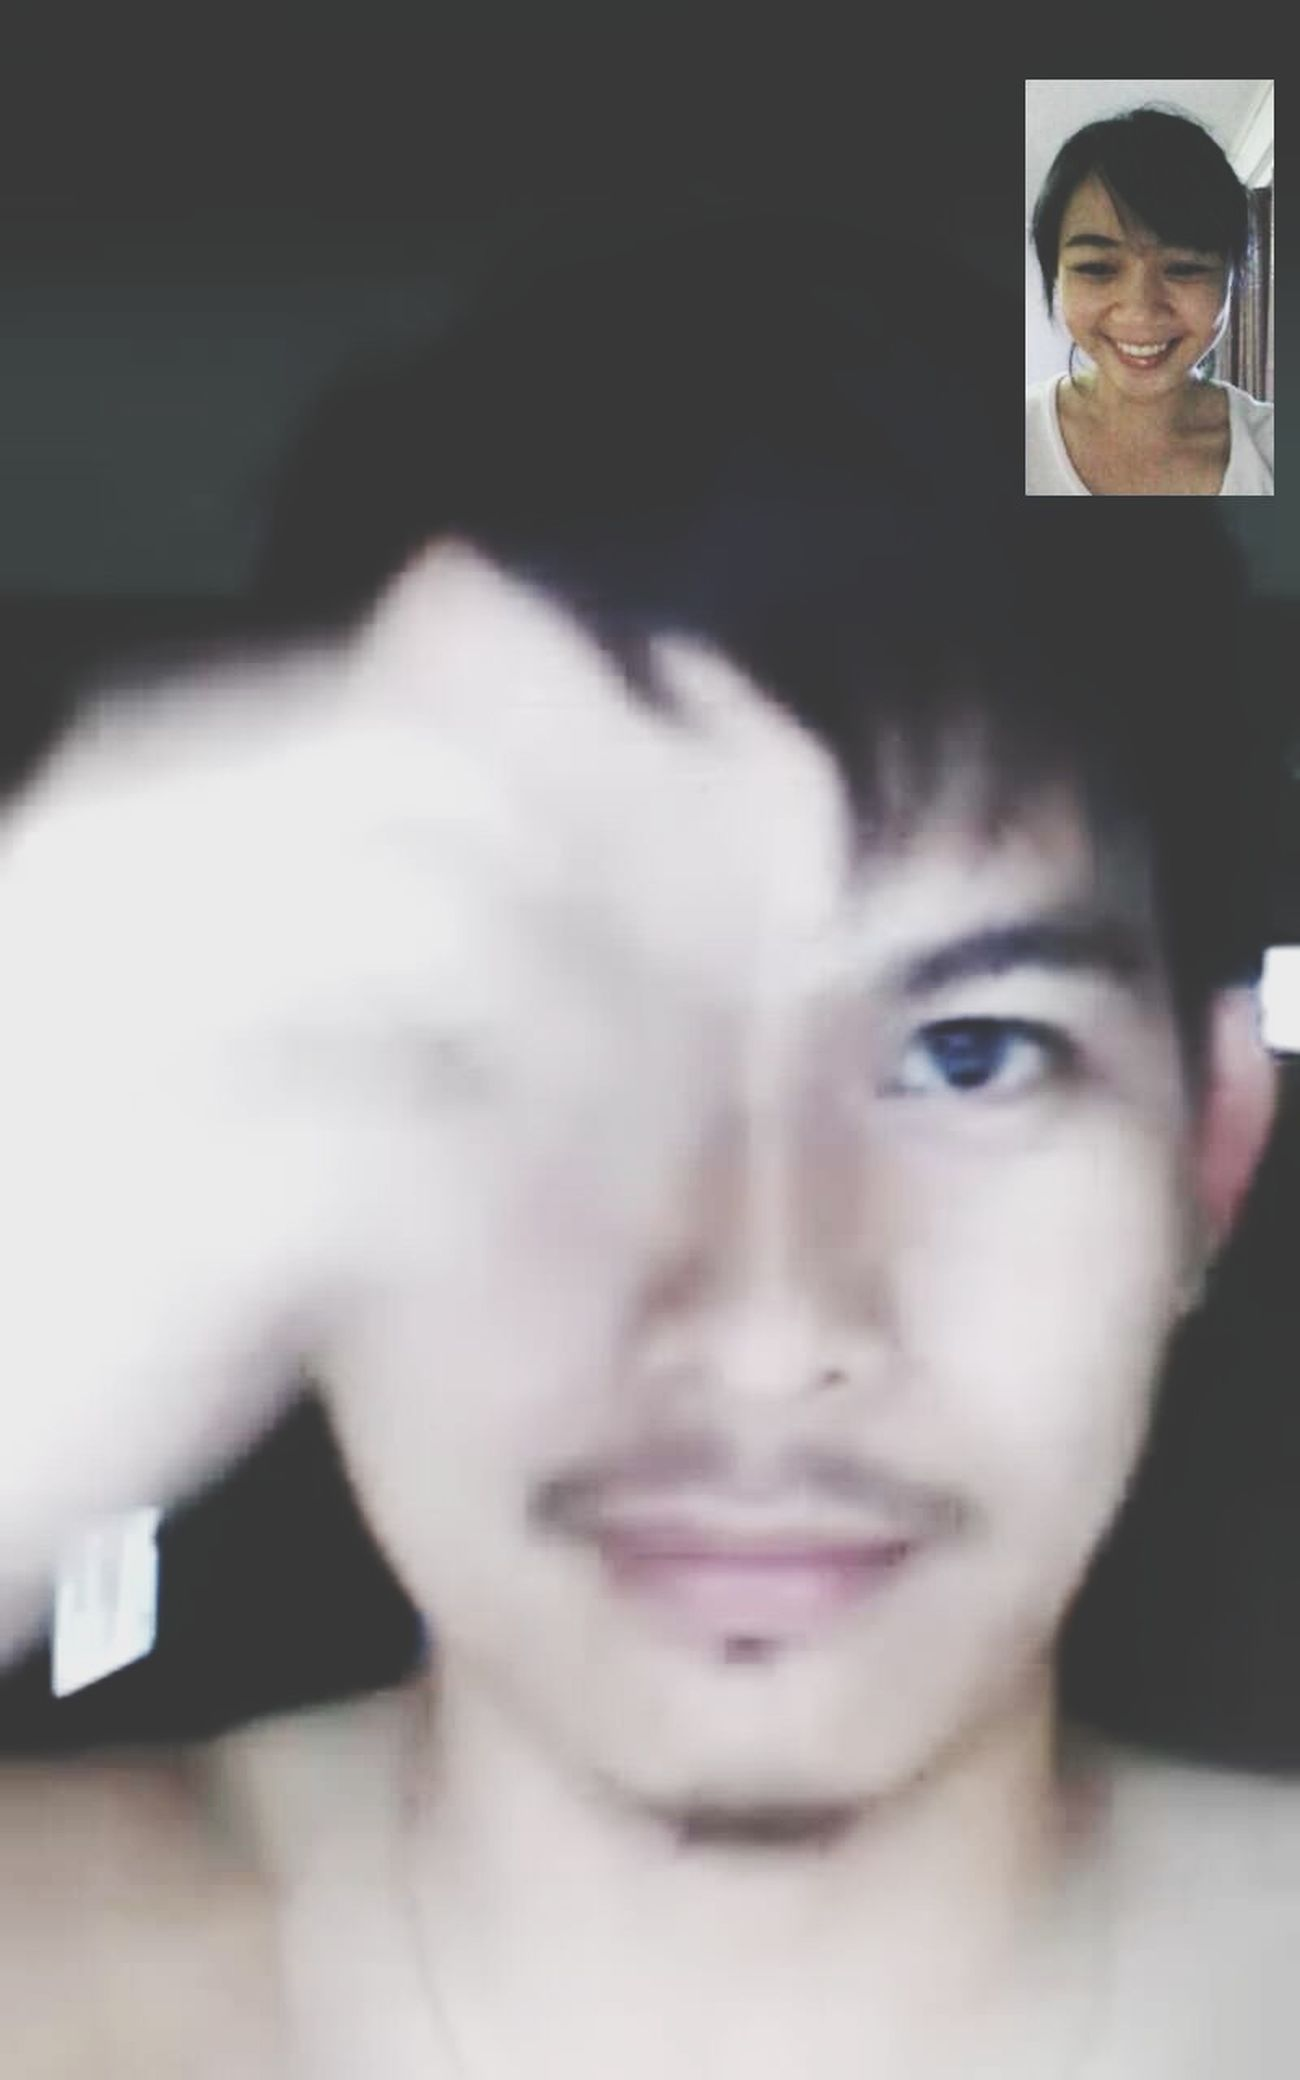 Missing everything.. Love Wechatcall Videocall Screenshot Calling Missing